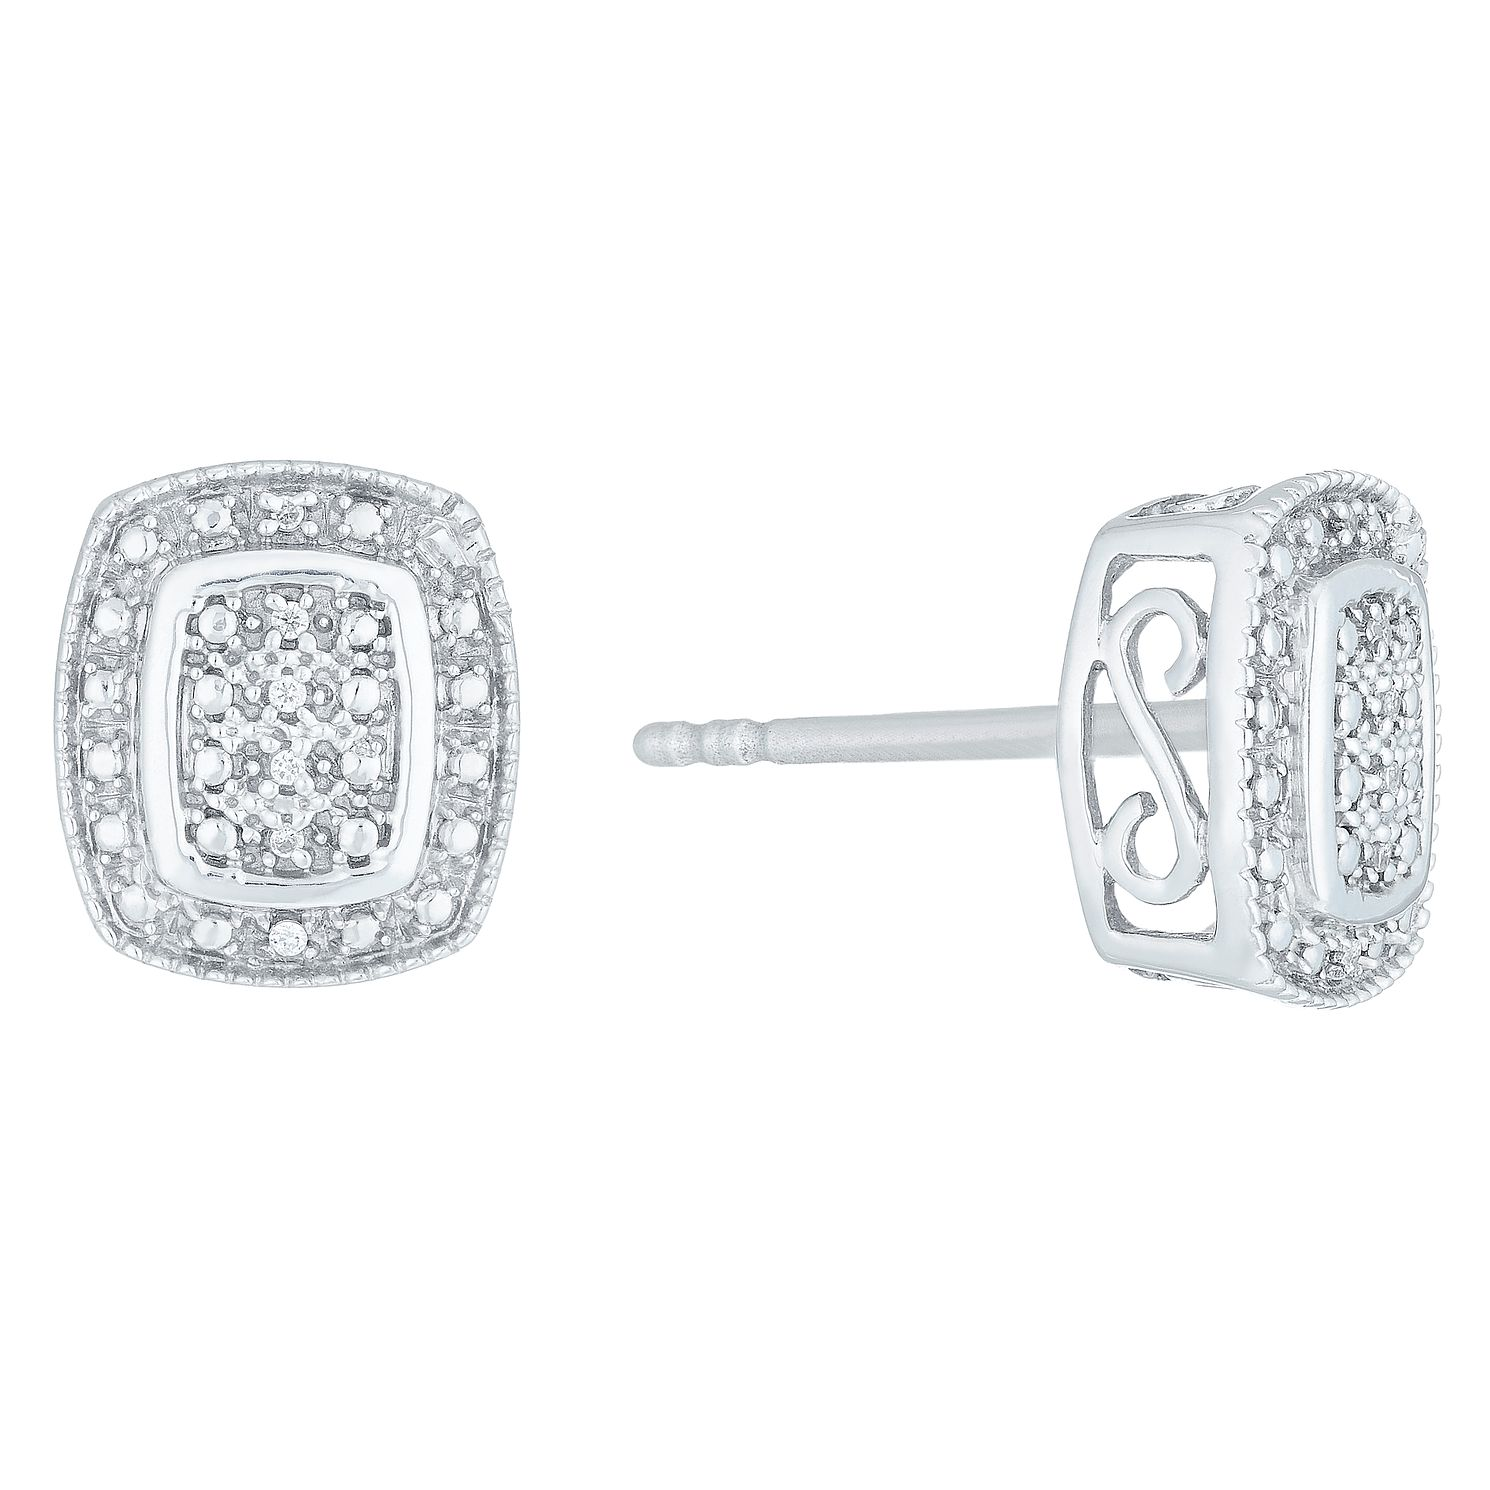 prod hei qlt stud p wid earrings silver diamond cttw square sterling